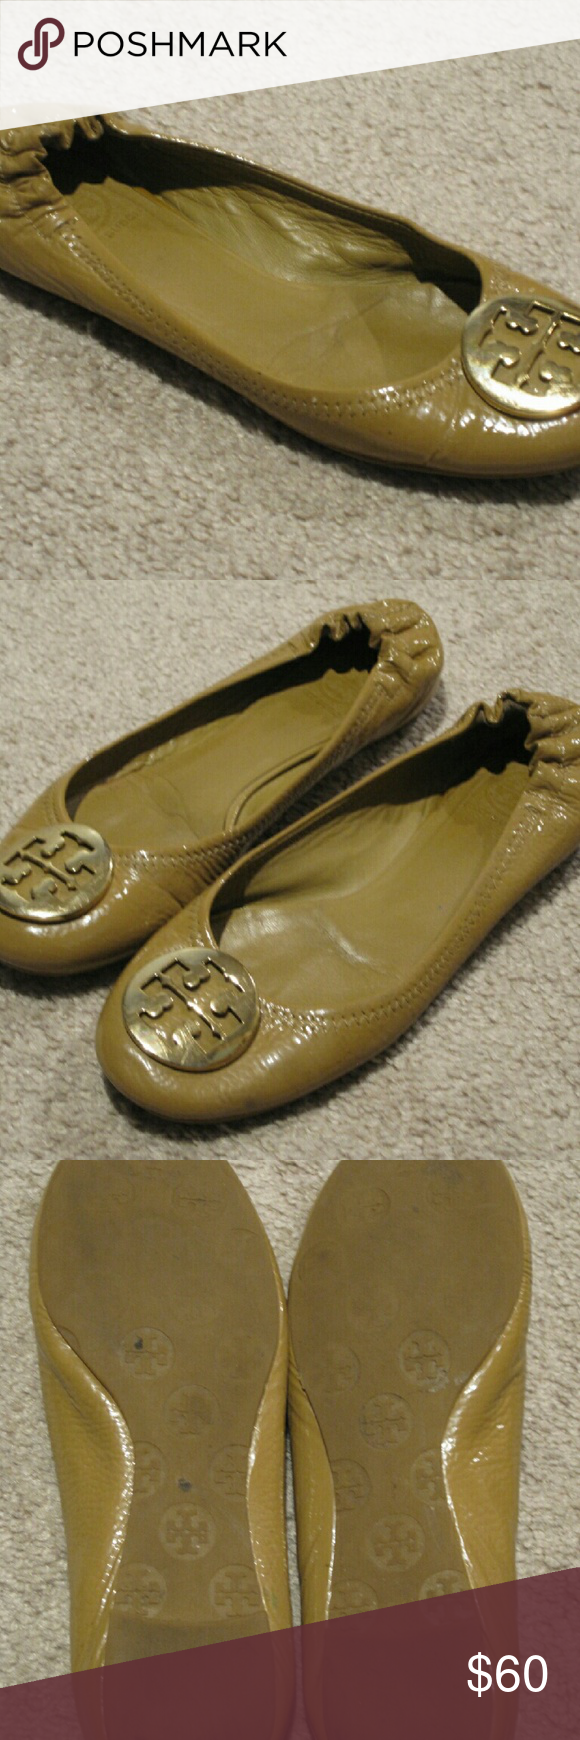 Tory Burch Polished Patent Royal Tan Reva 8.5 These are the polished patent style Reva with tan patent leather exterior and a gold emblem on the front. ?These have been worn quite a bit and are going to need to be resoled. ?The heel is worn down a bit on the left shoe. ?The right one has a small rip in the patent leather. ?However they are still wearable as is. ?These are a pretty hard to find style and with a bit of TLC can have many more miles in them. Tory Burch Shoes Flats & Loafers